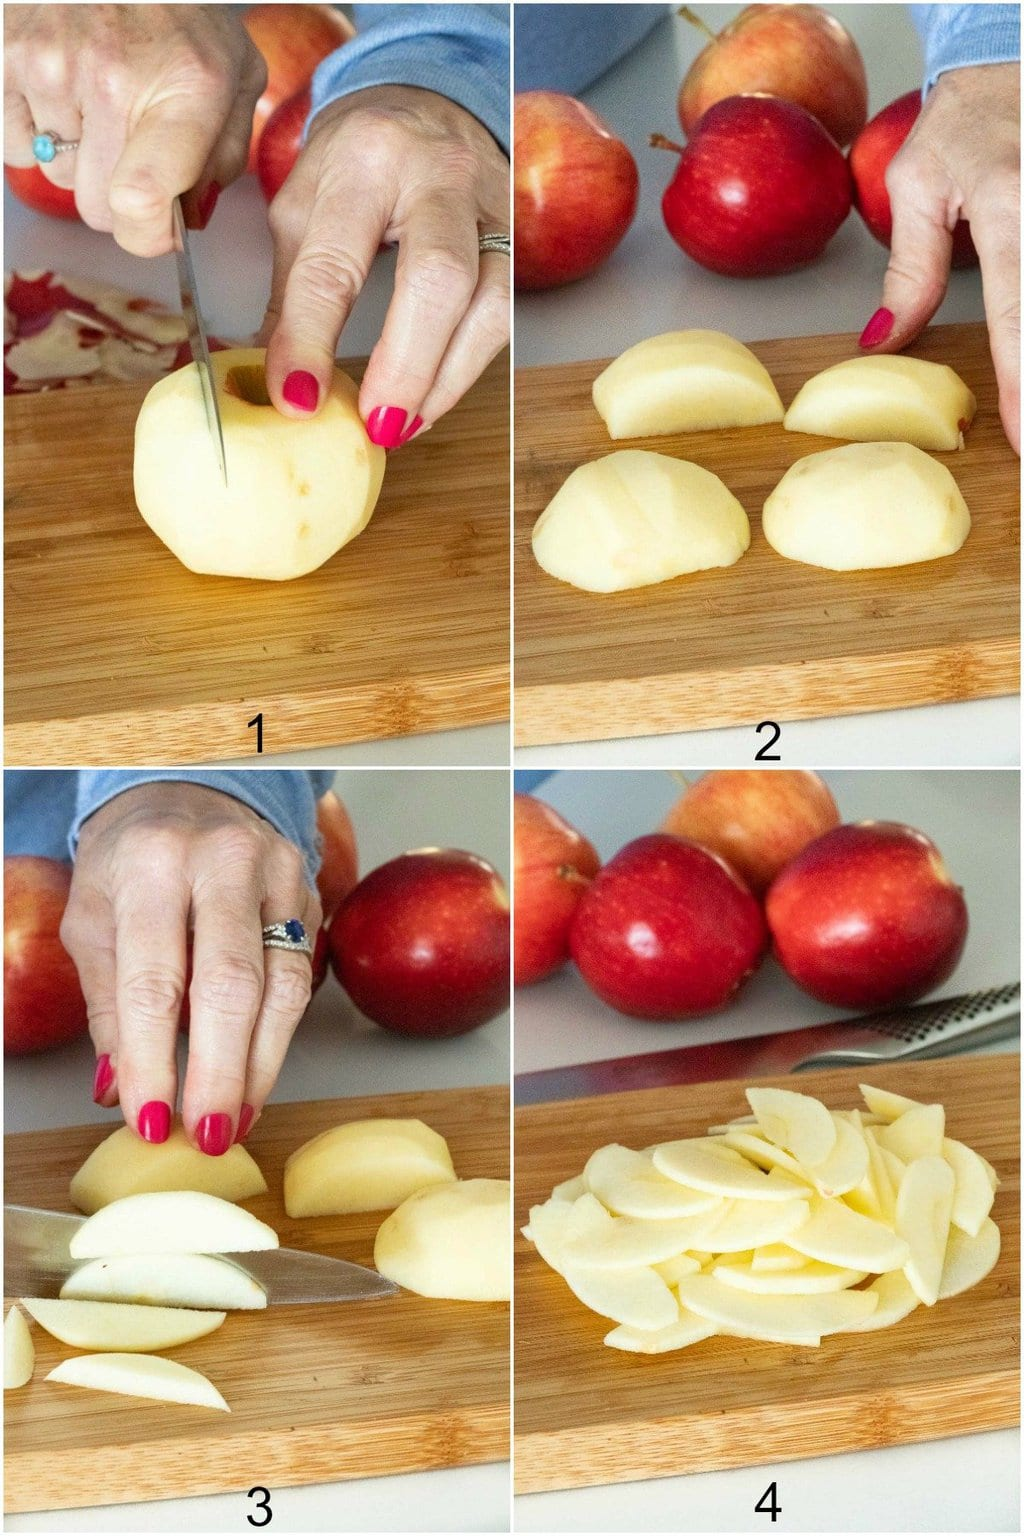 Four photo vertical collage demonstrating how to cut an apple for making Annie's Easy Apple Pie.